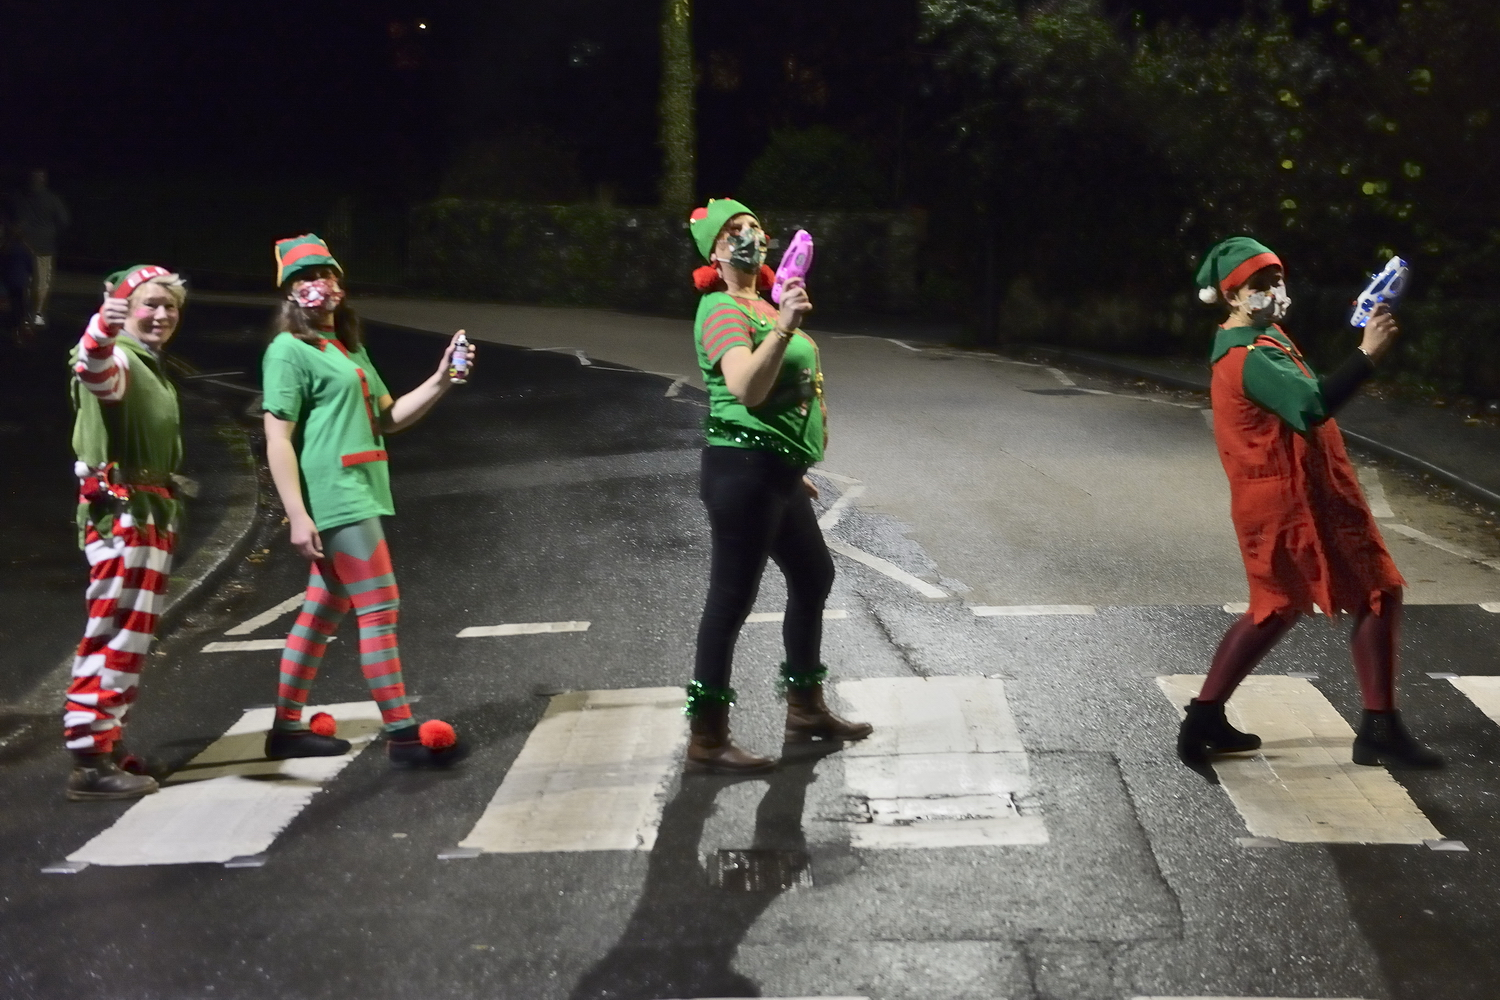 Elves crossing the road